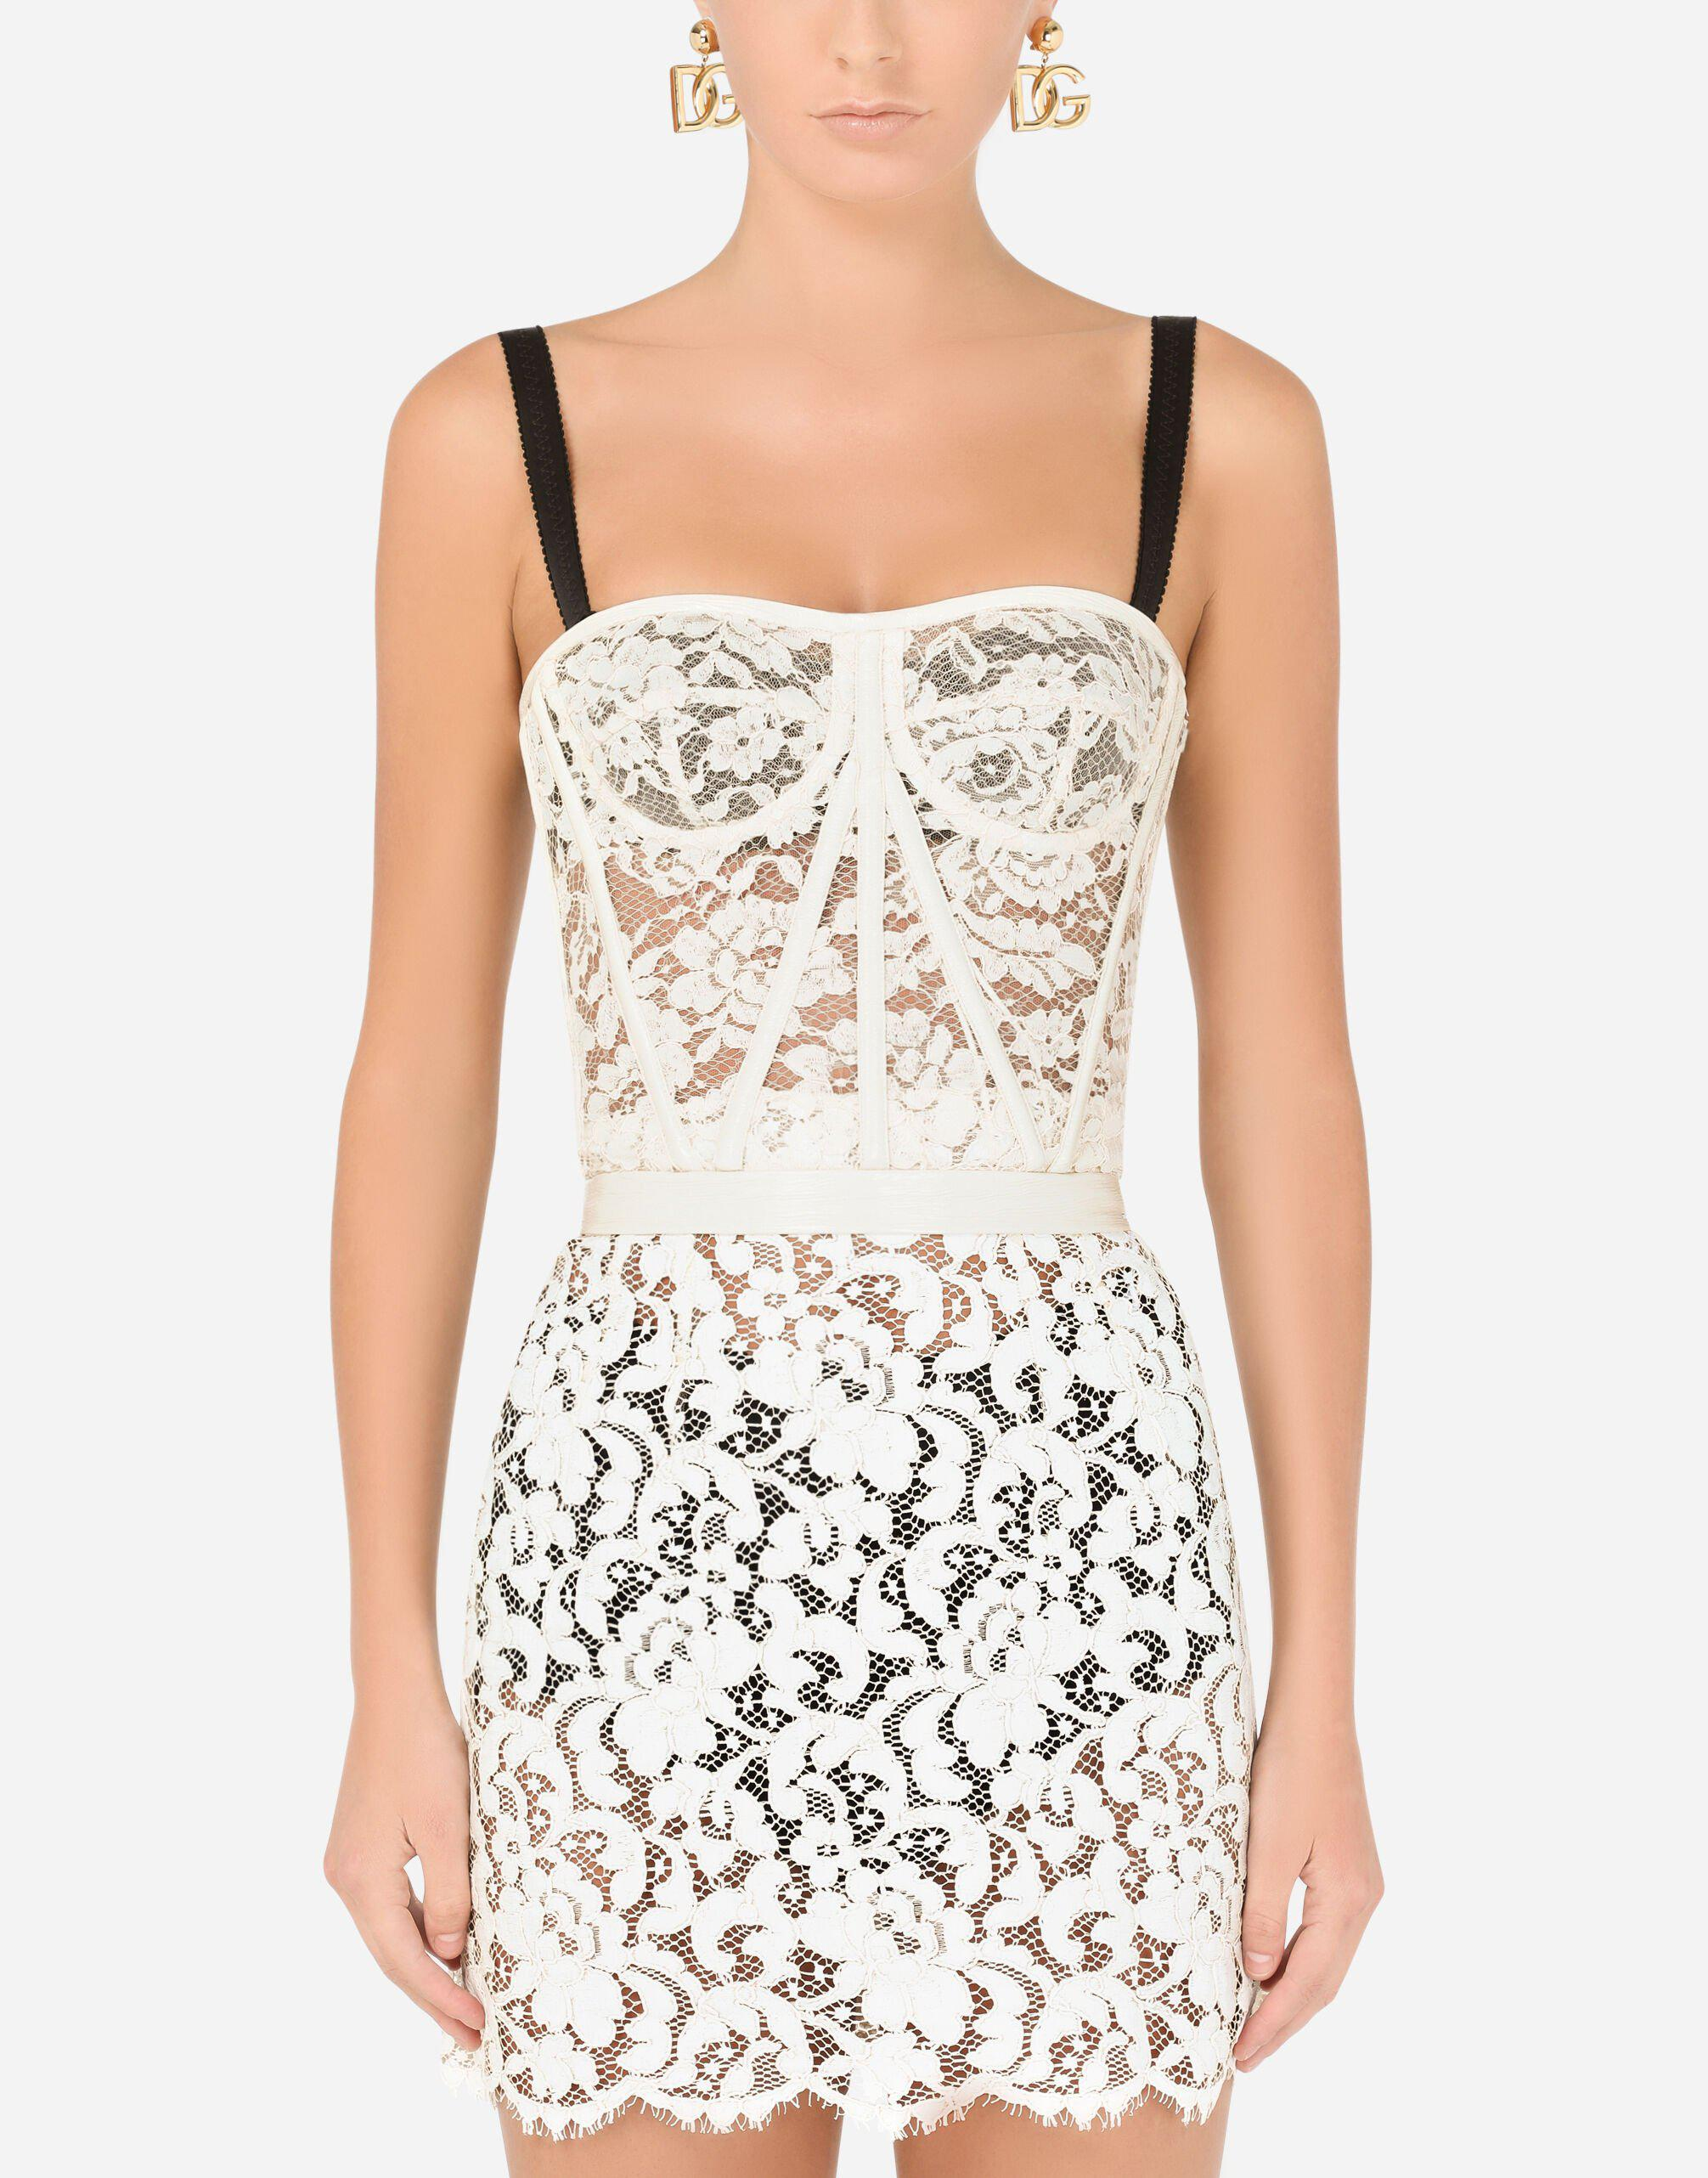 Laminated lace bustier